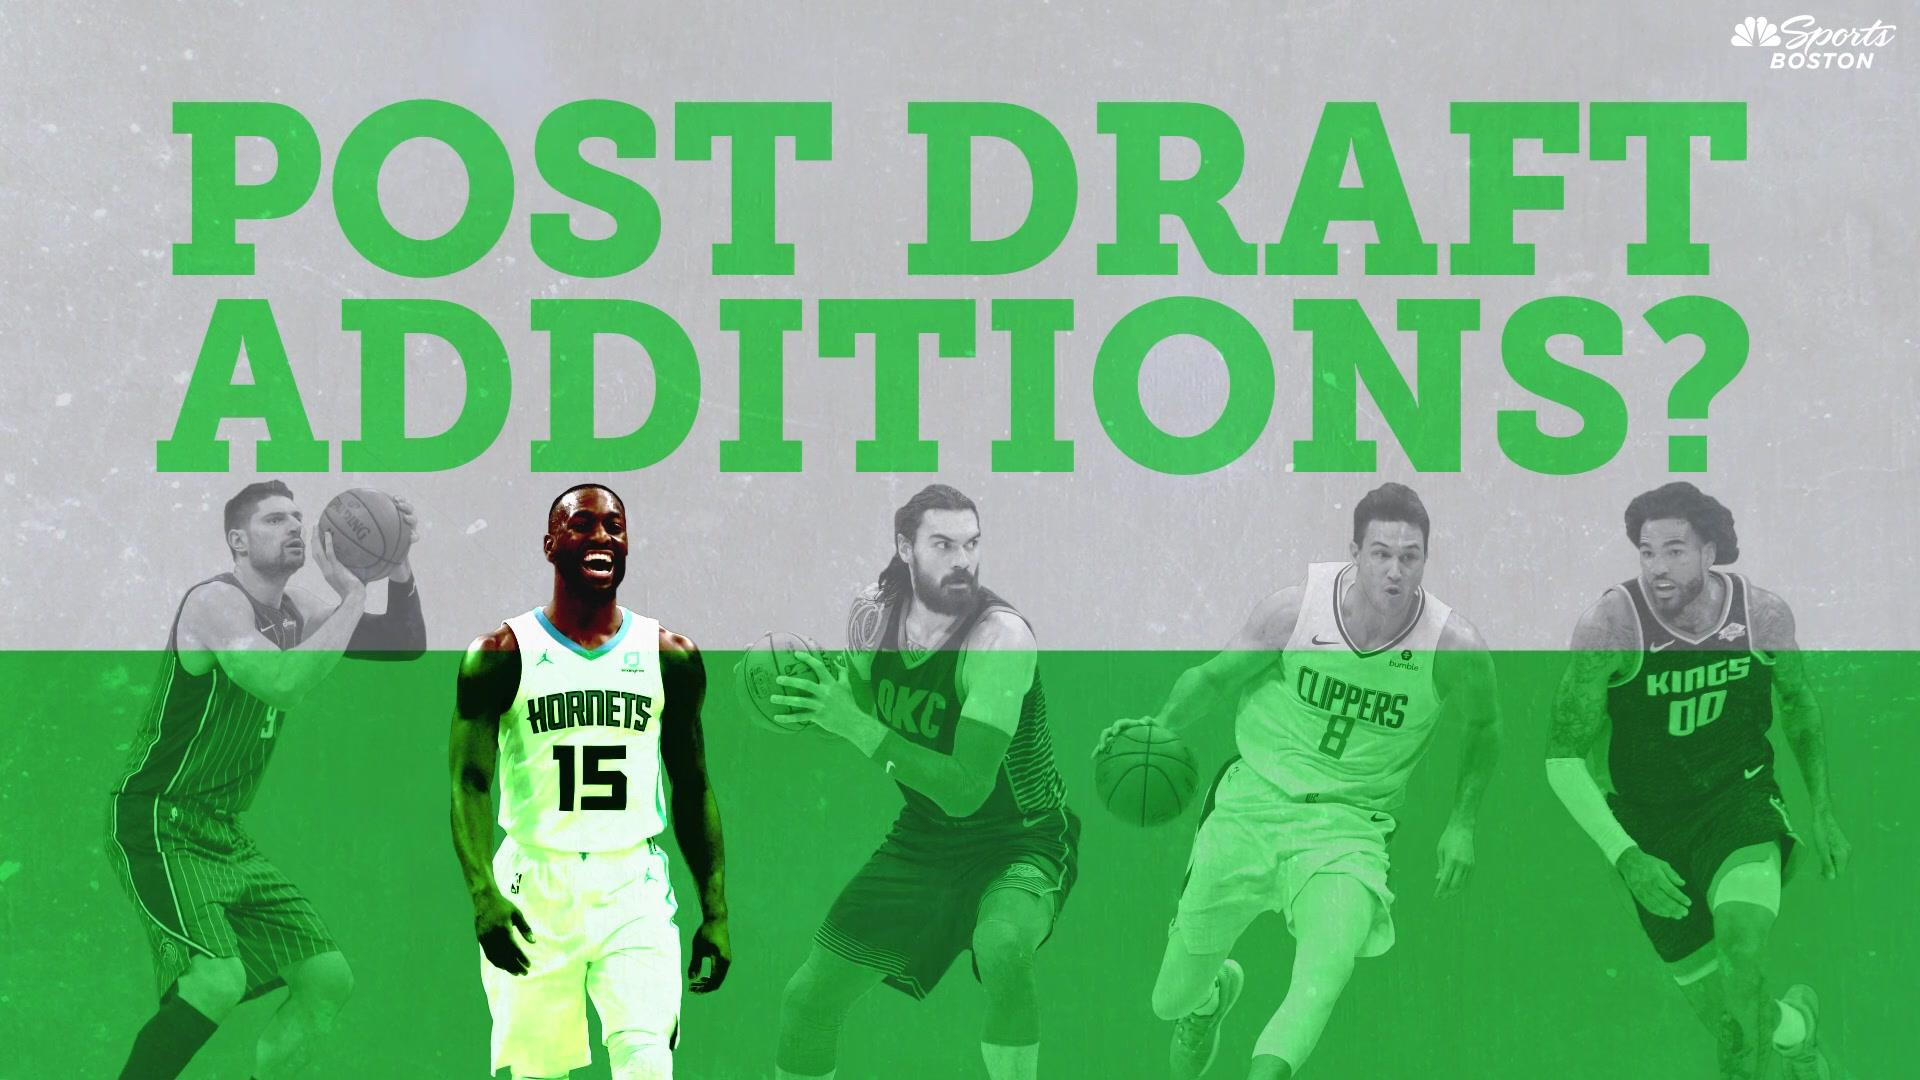 Potential post-draft additions for the Celtics: Kemba Walker